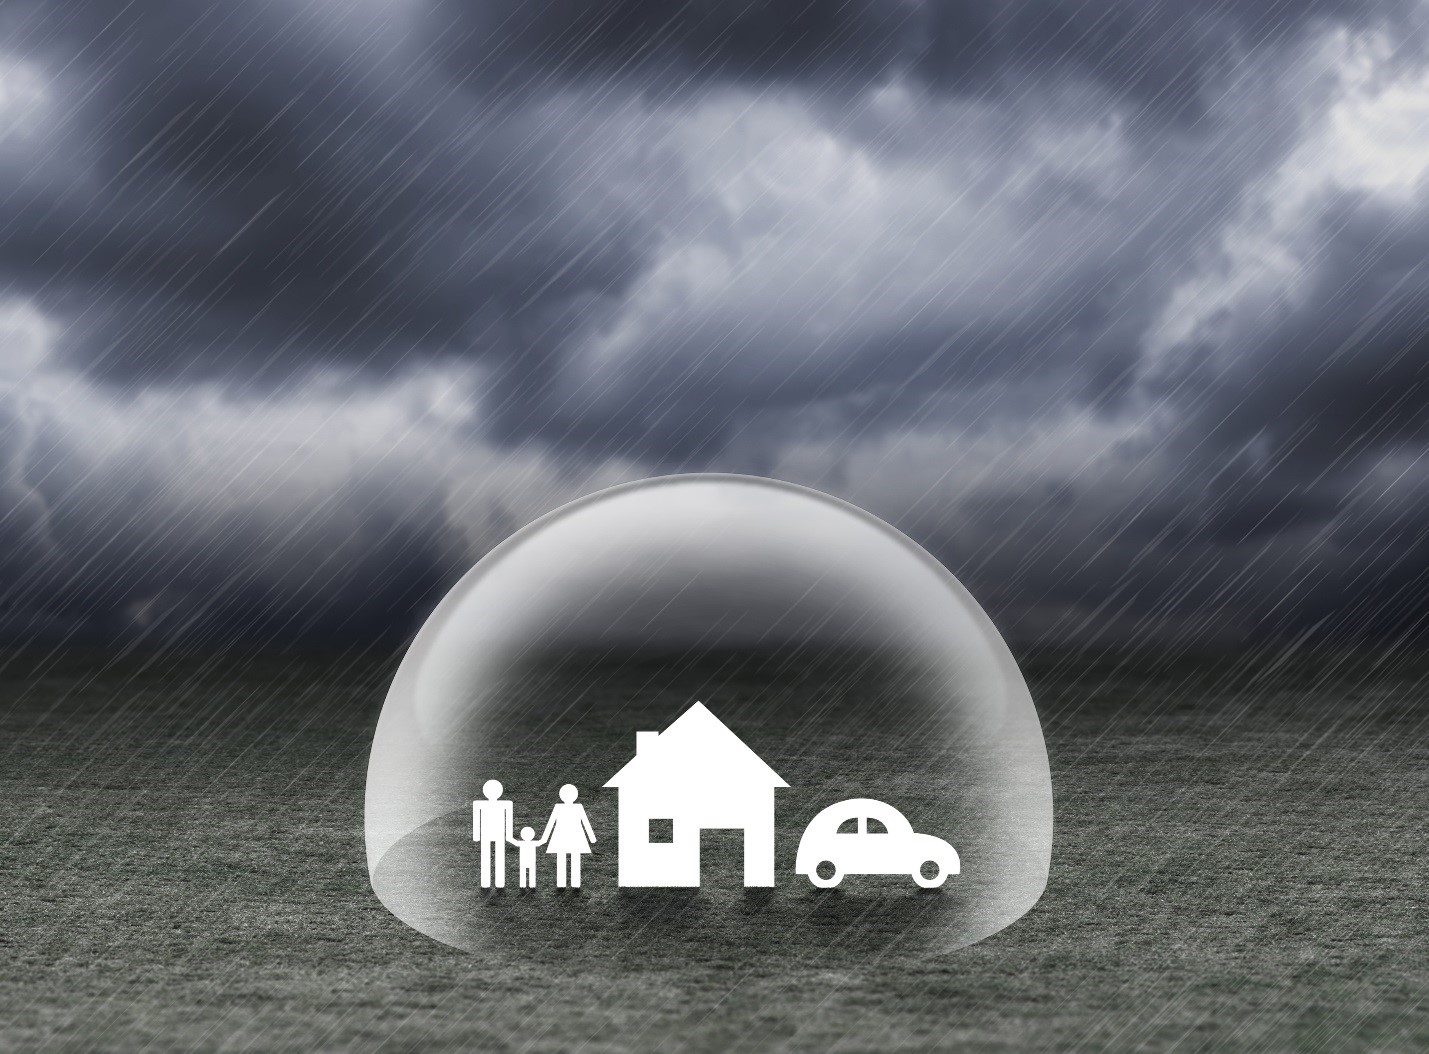 Insurance Policies and Storm Damage: How to Make Sure You're Prepared on avanteinsurance.com